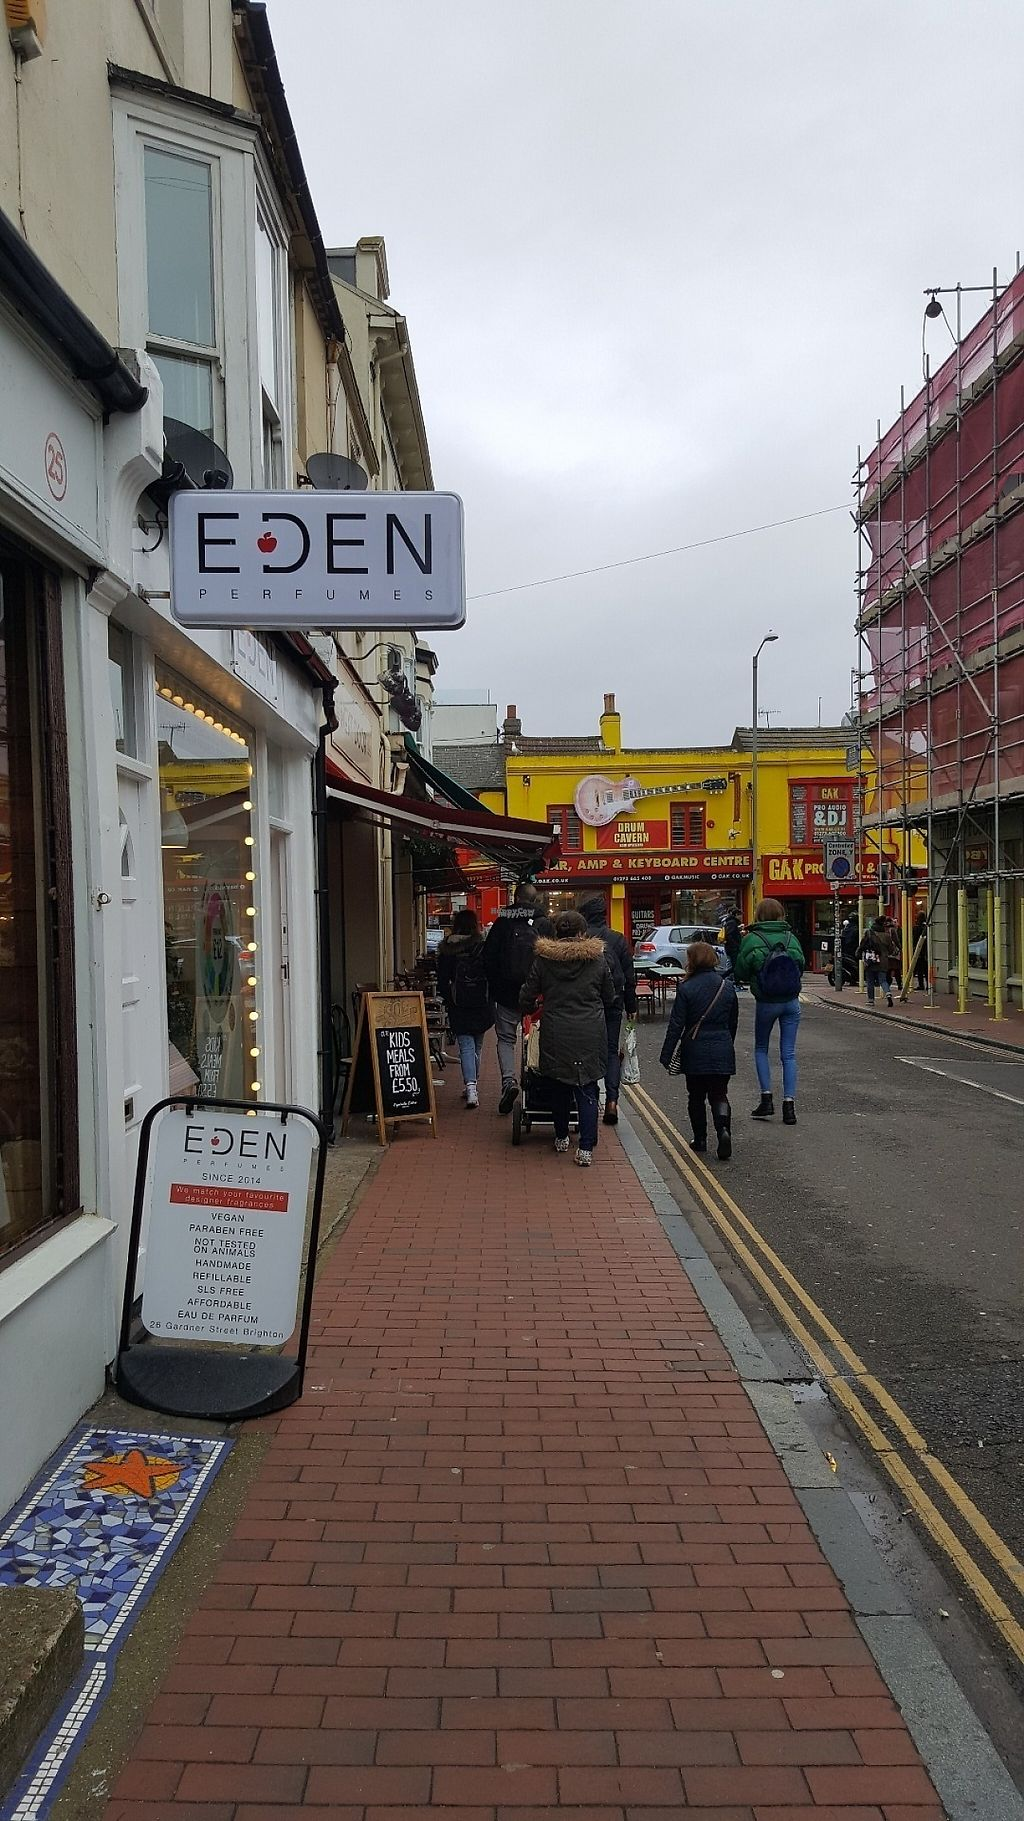 """Photo of Eden Perfumes - The Lanes  by <a href=""""/members/profile/Clare"""">Clare</a> <br/>Store front <br/> February 26, 2017  - <a href='/contact/abuse/image/87779/230816'>Report</a>"""